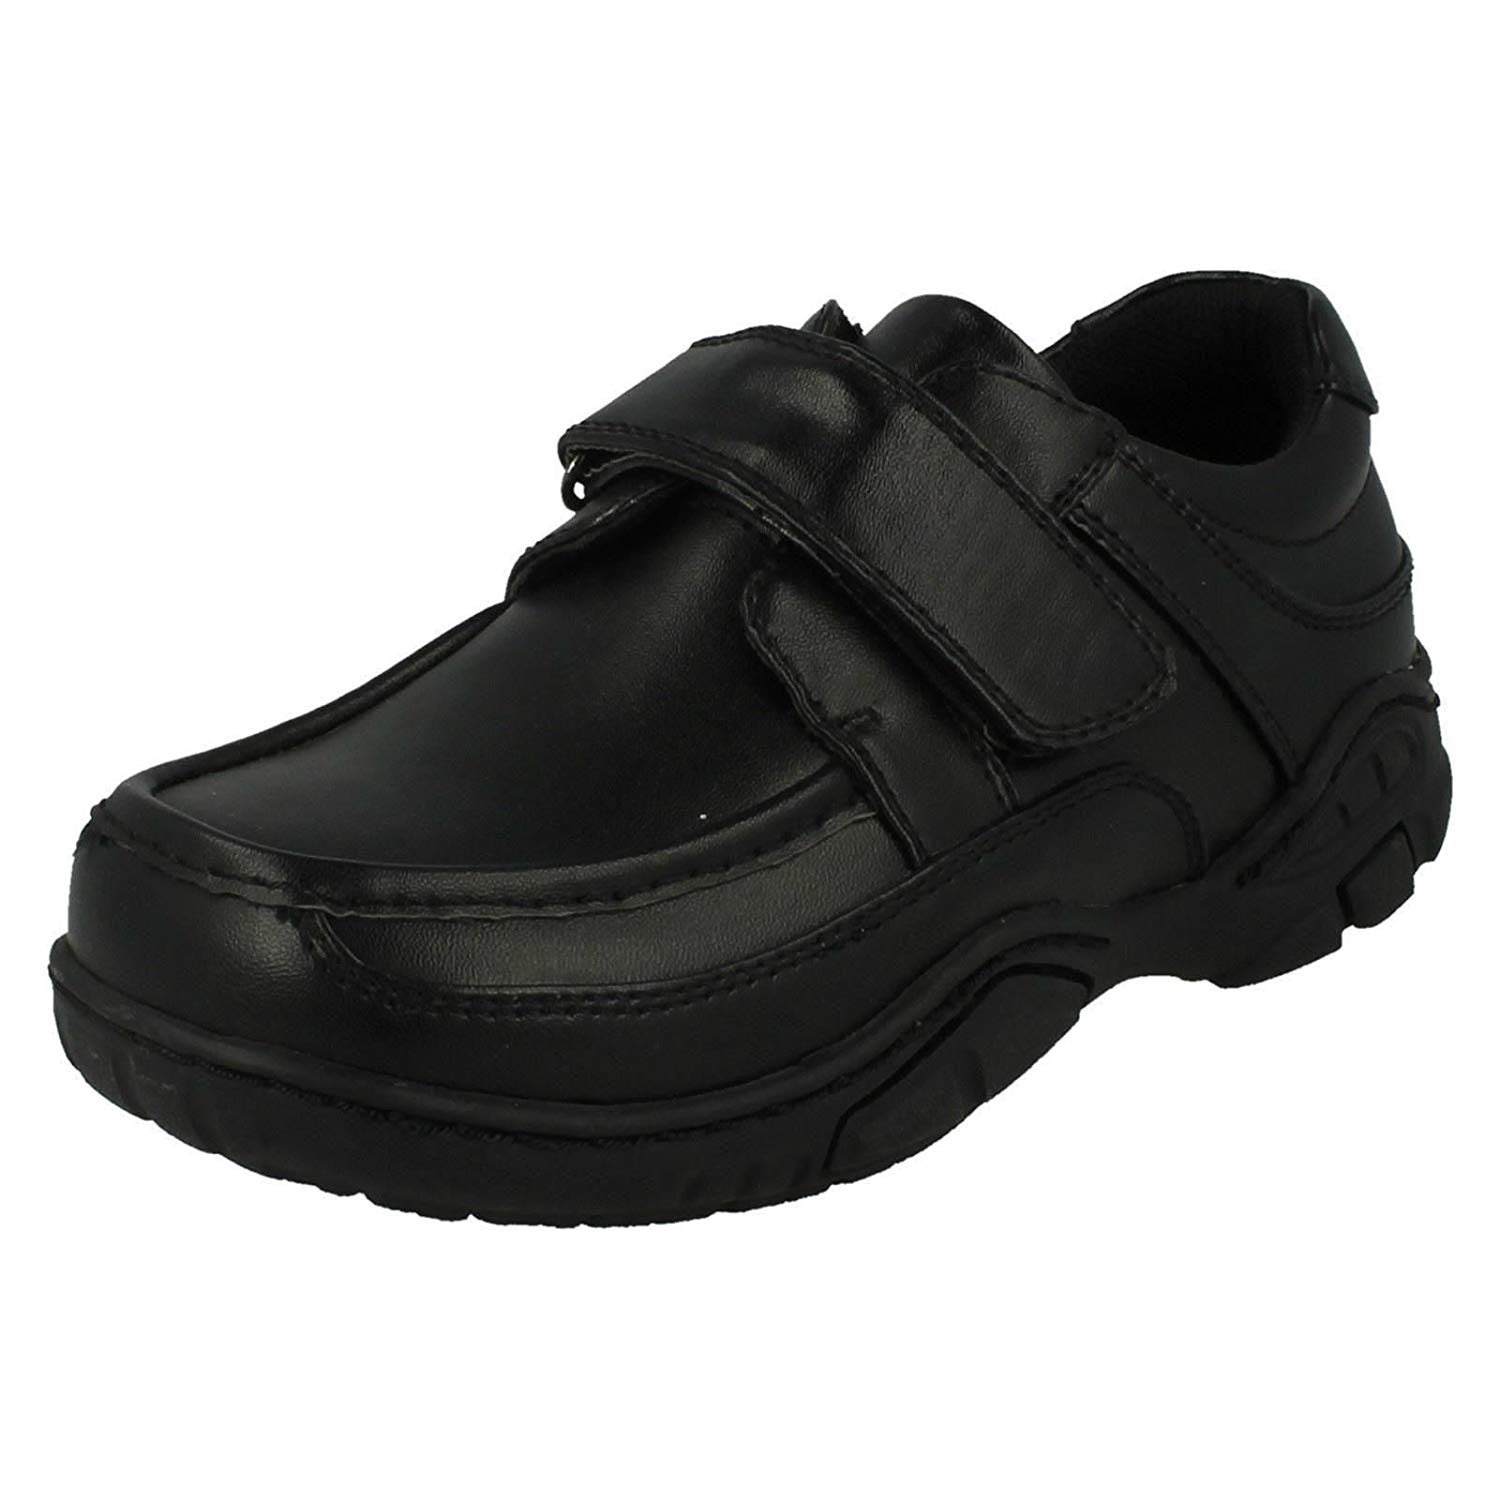 da2ee7fc4 Get Quotations · Cool For School Childrens Boys Formal School Shoes